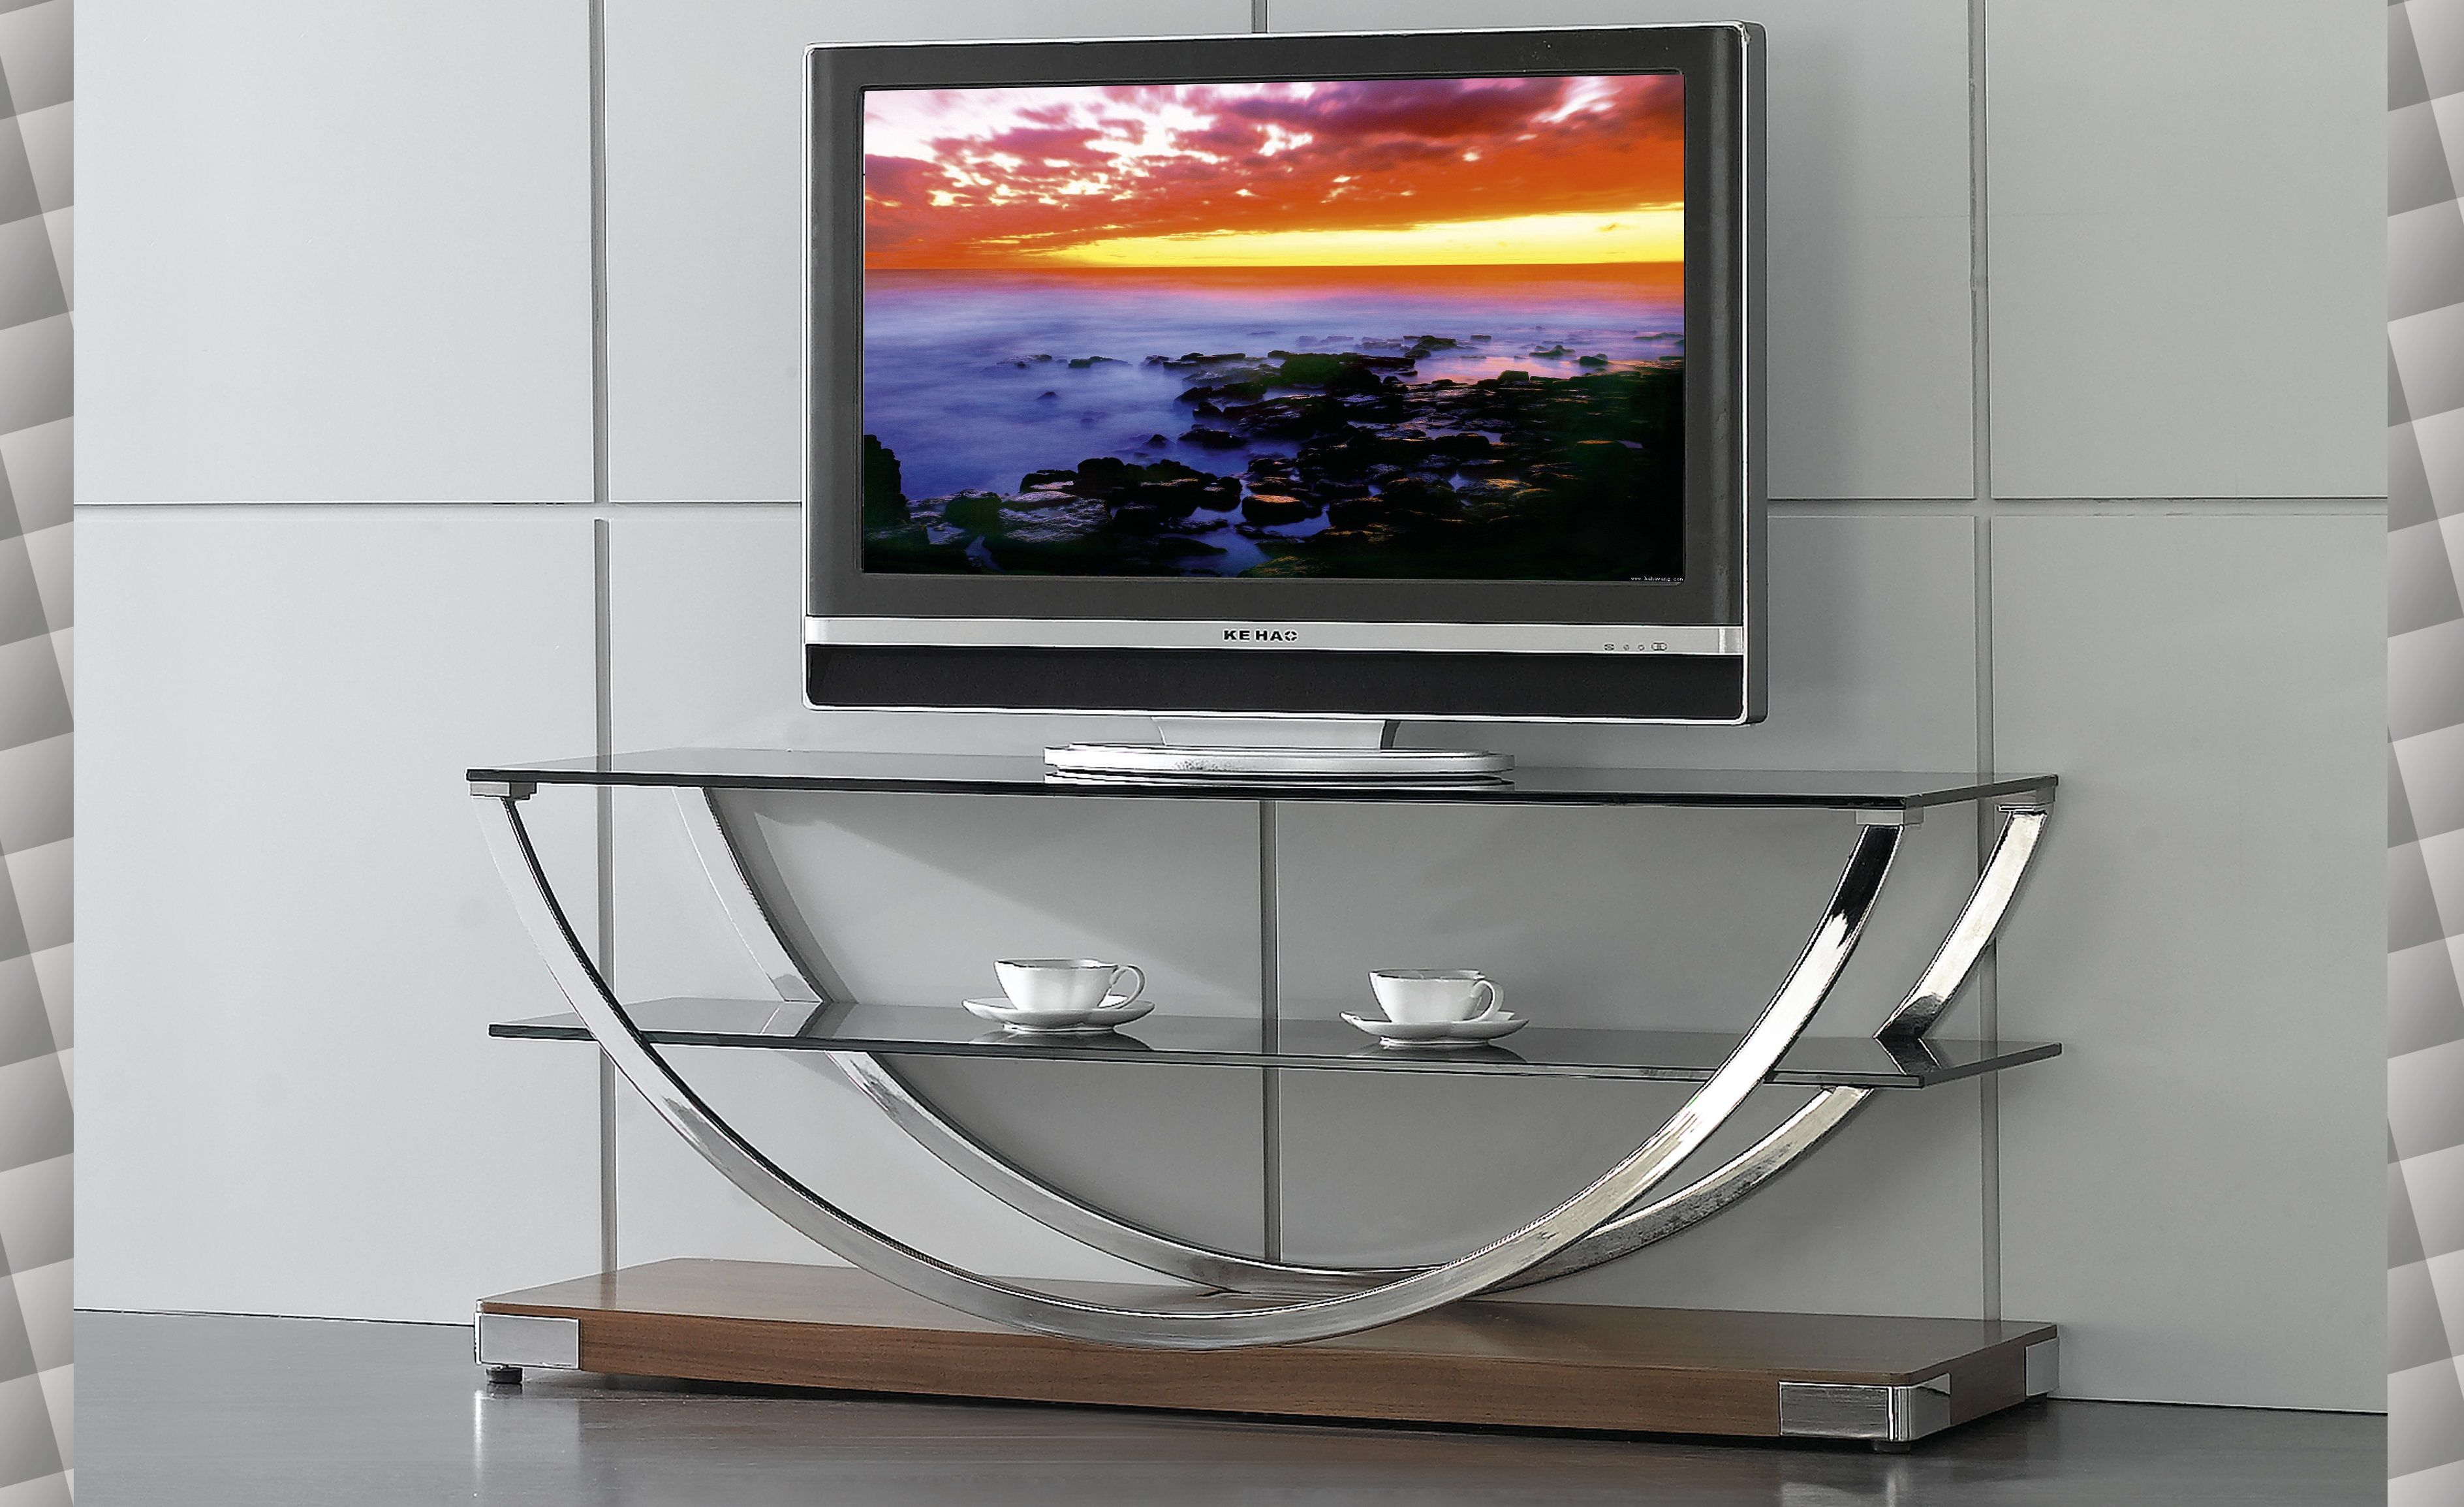 tvr modern glass tv stand by at home usa https  - tvr modern glass tv stand by at home usa httpsfurnituregallerynyccom